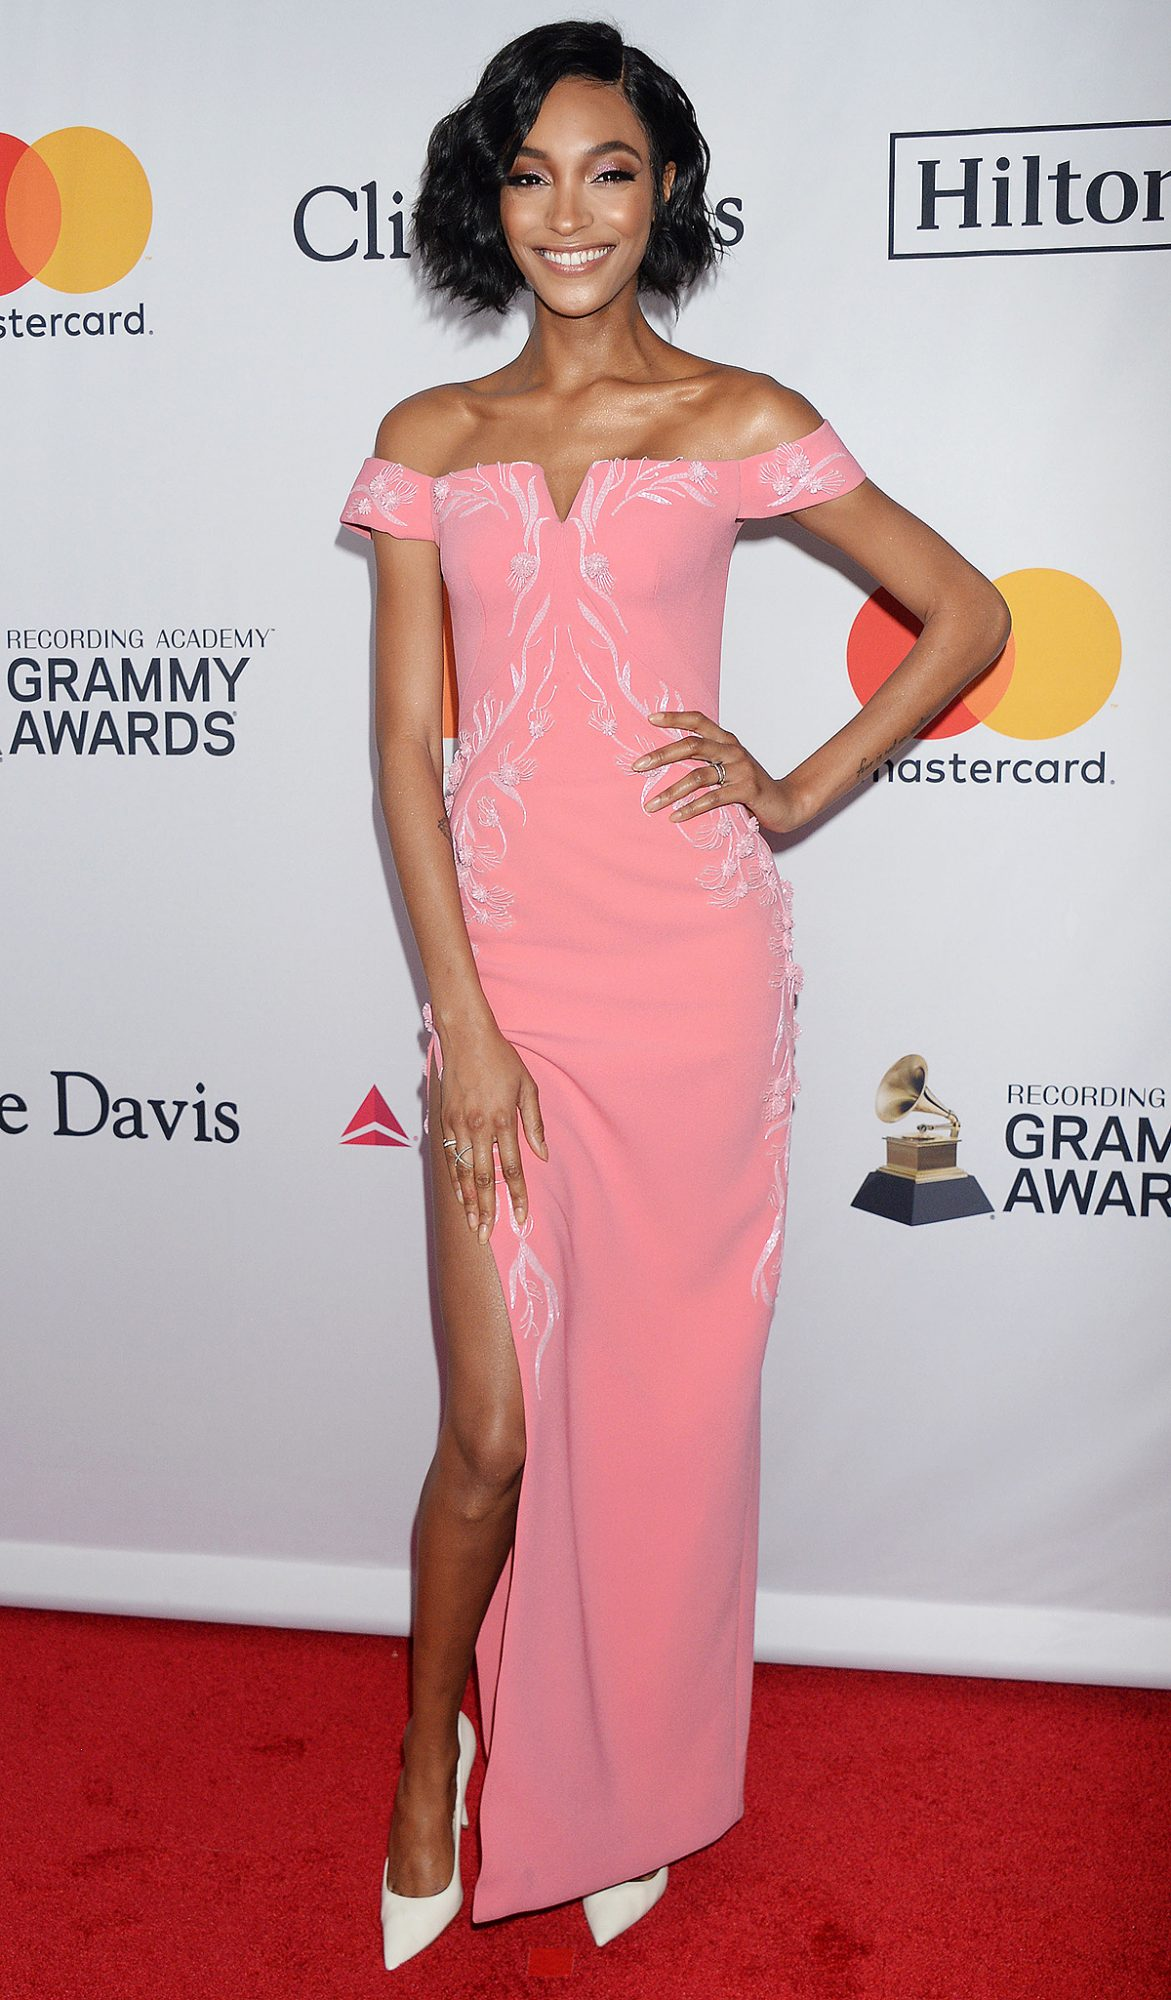 Clive Davis and Recording Academy Pre-Grammy Gala @ Sheraton Times Sqaure 02